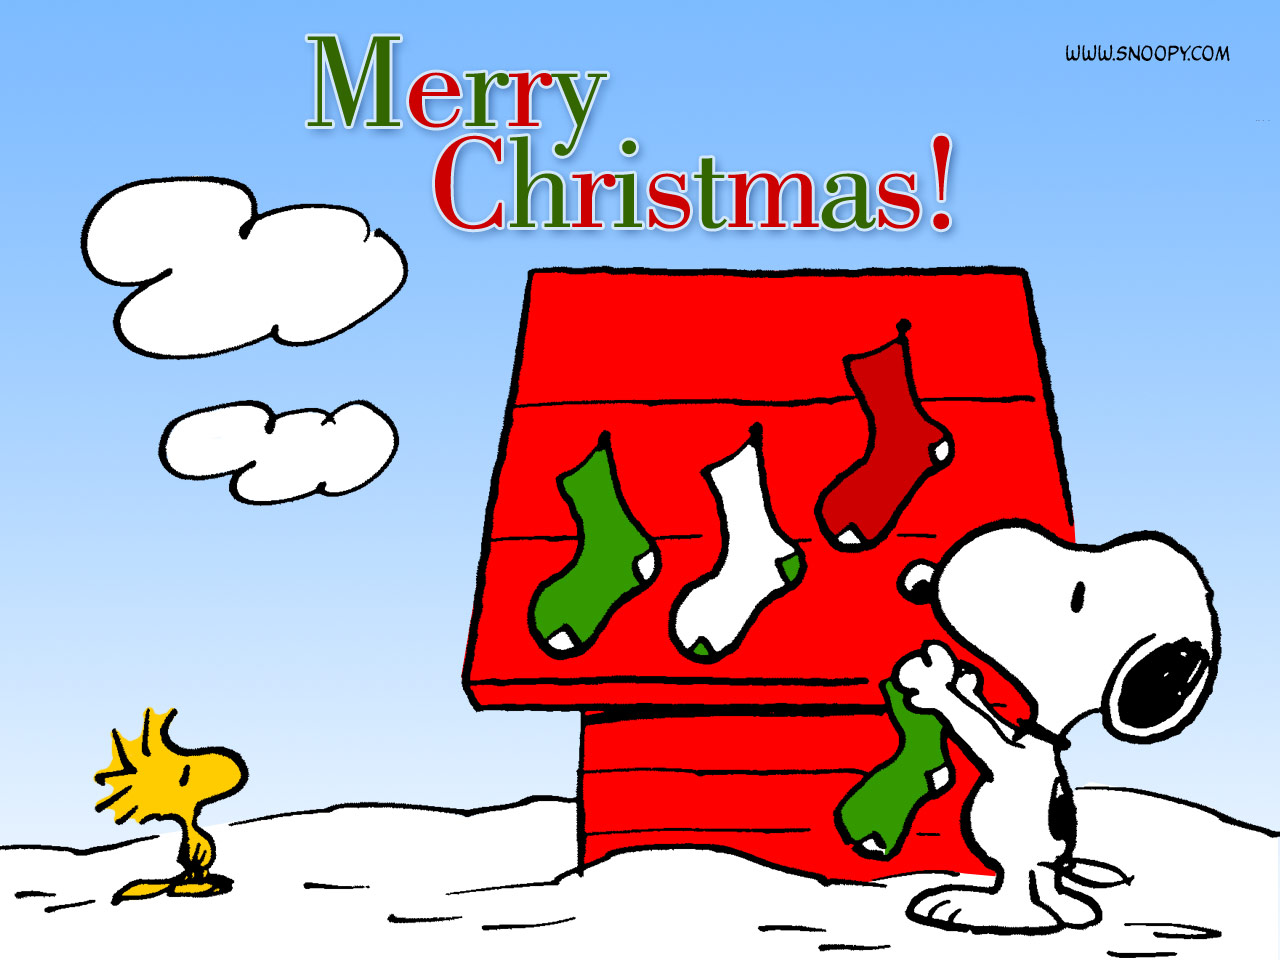 Clip Art Snoopy Christmas Clip Art snoopy and charlie brown christmas clipart kid countdown to 2014 december 25 2014